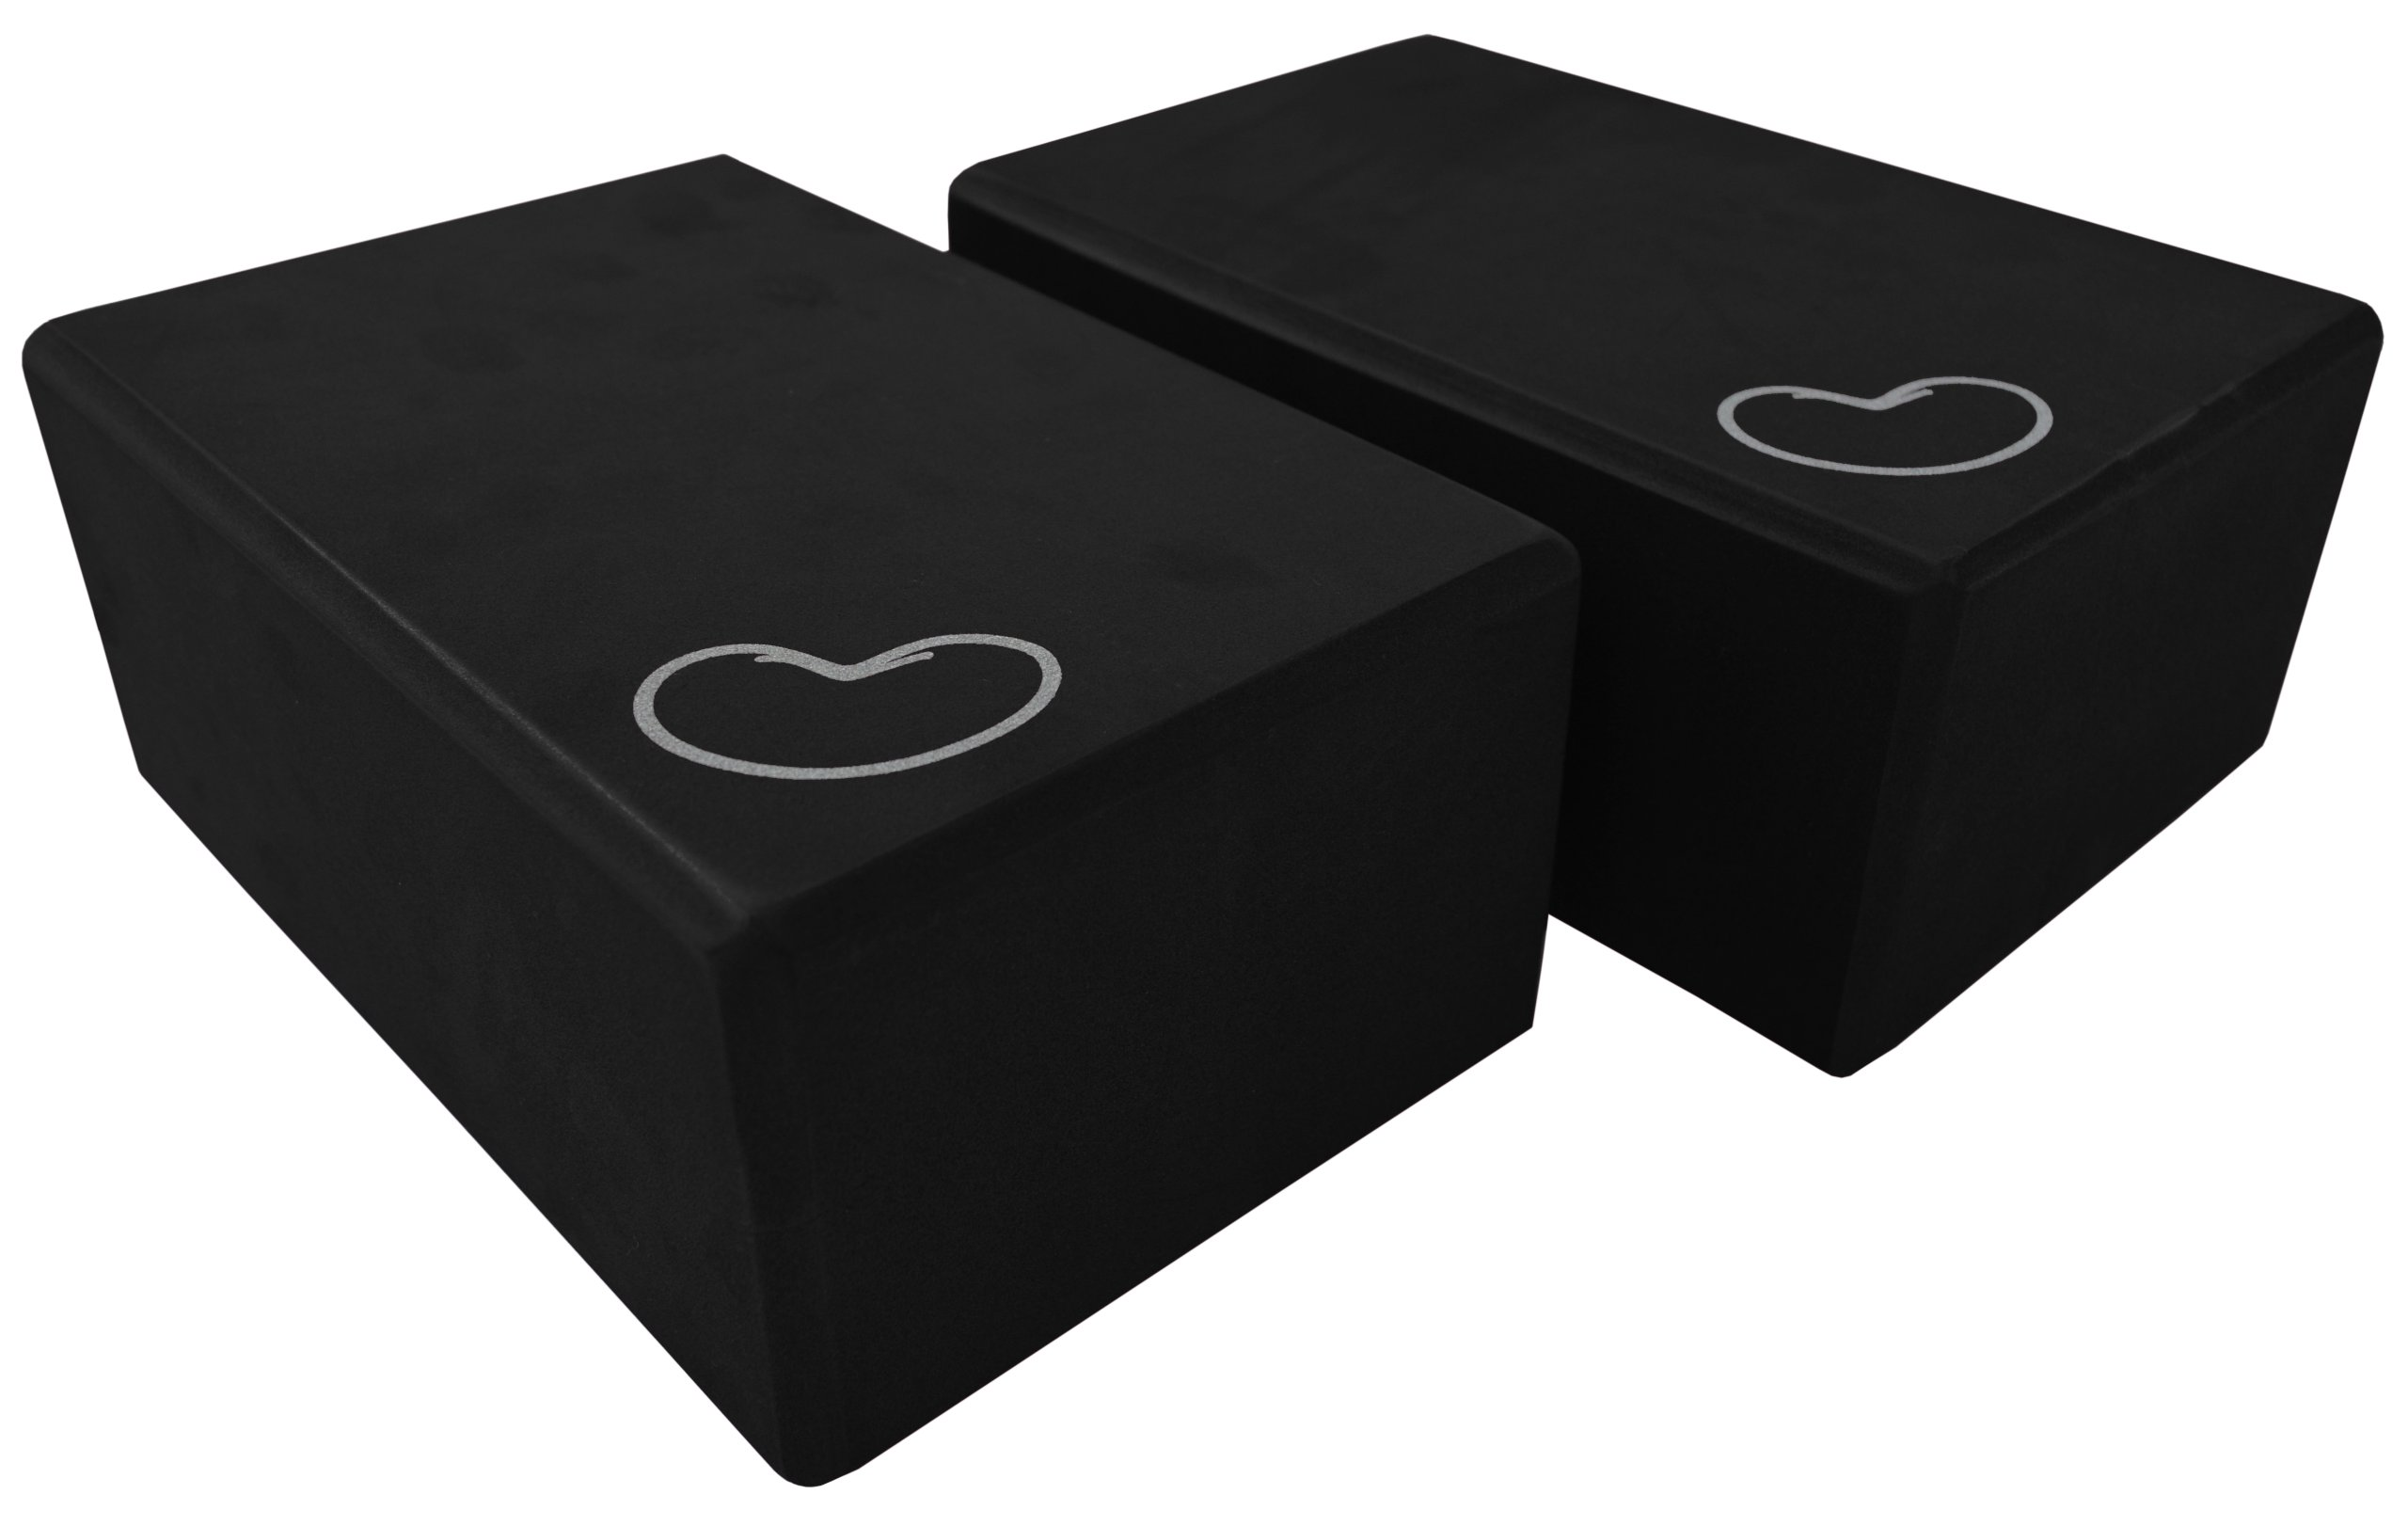 Bean Products Black - 2 Pack - EVA Yoga Block - 3 x 6 x 9 inches